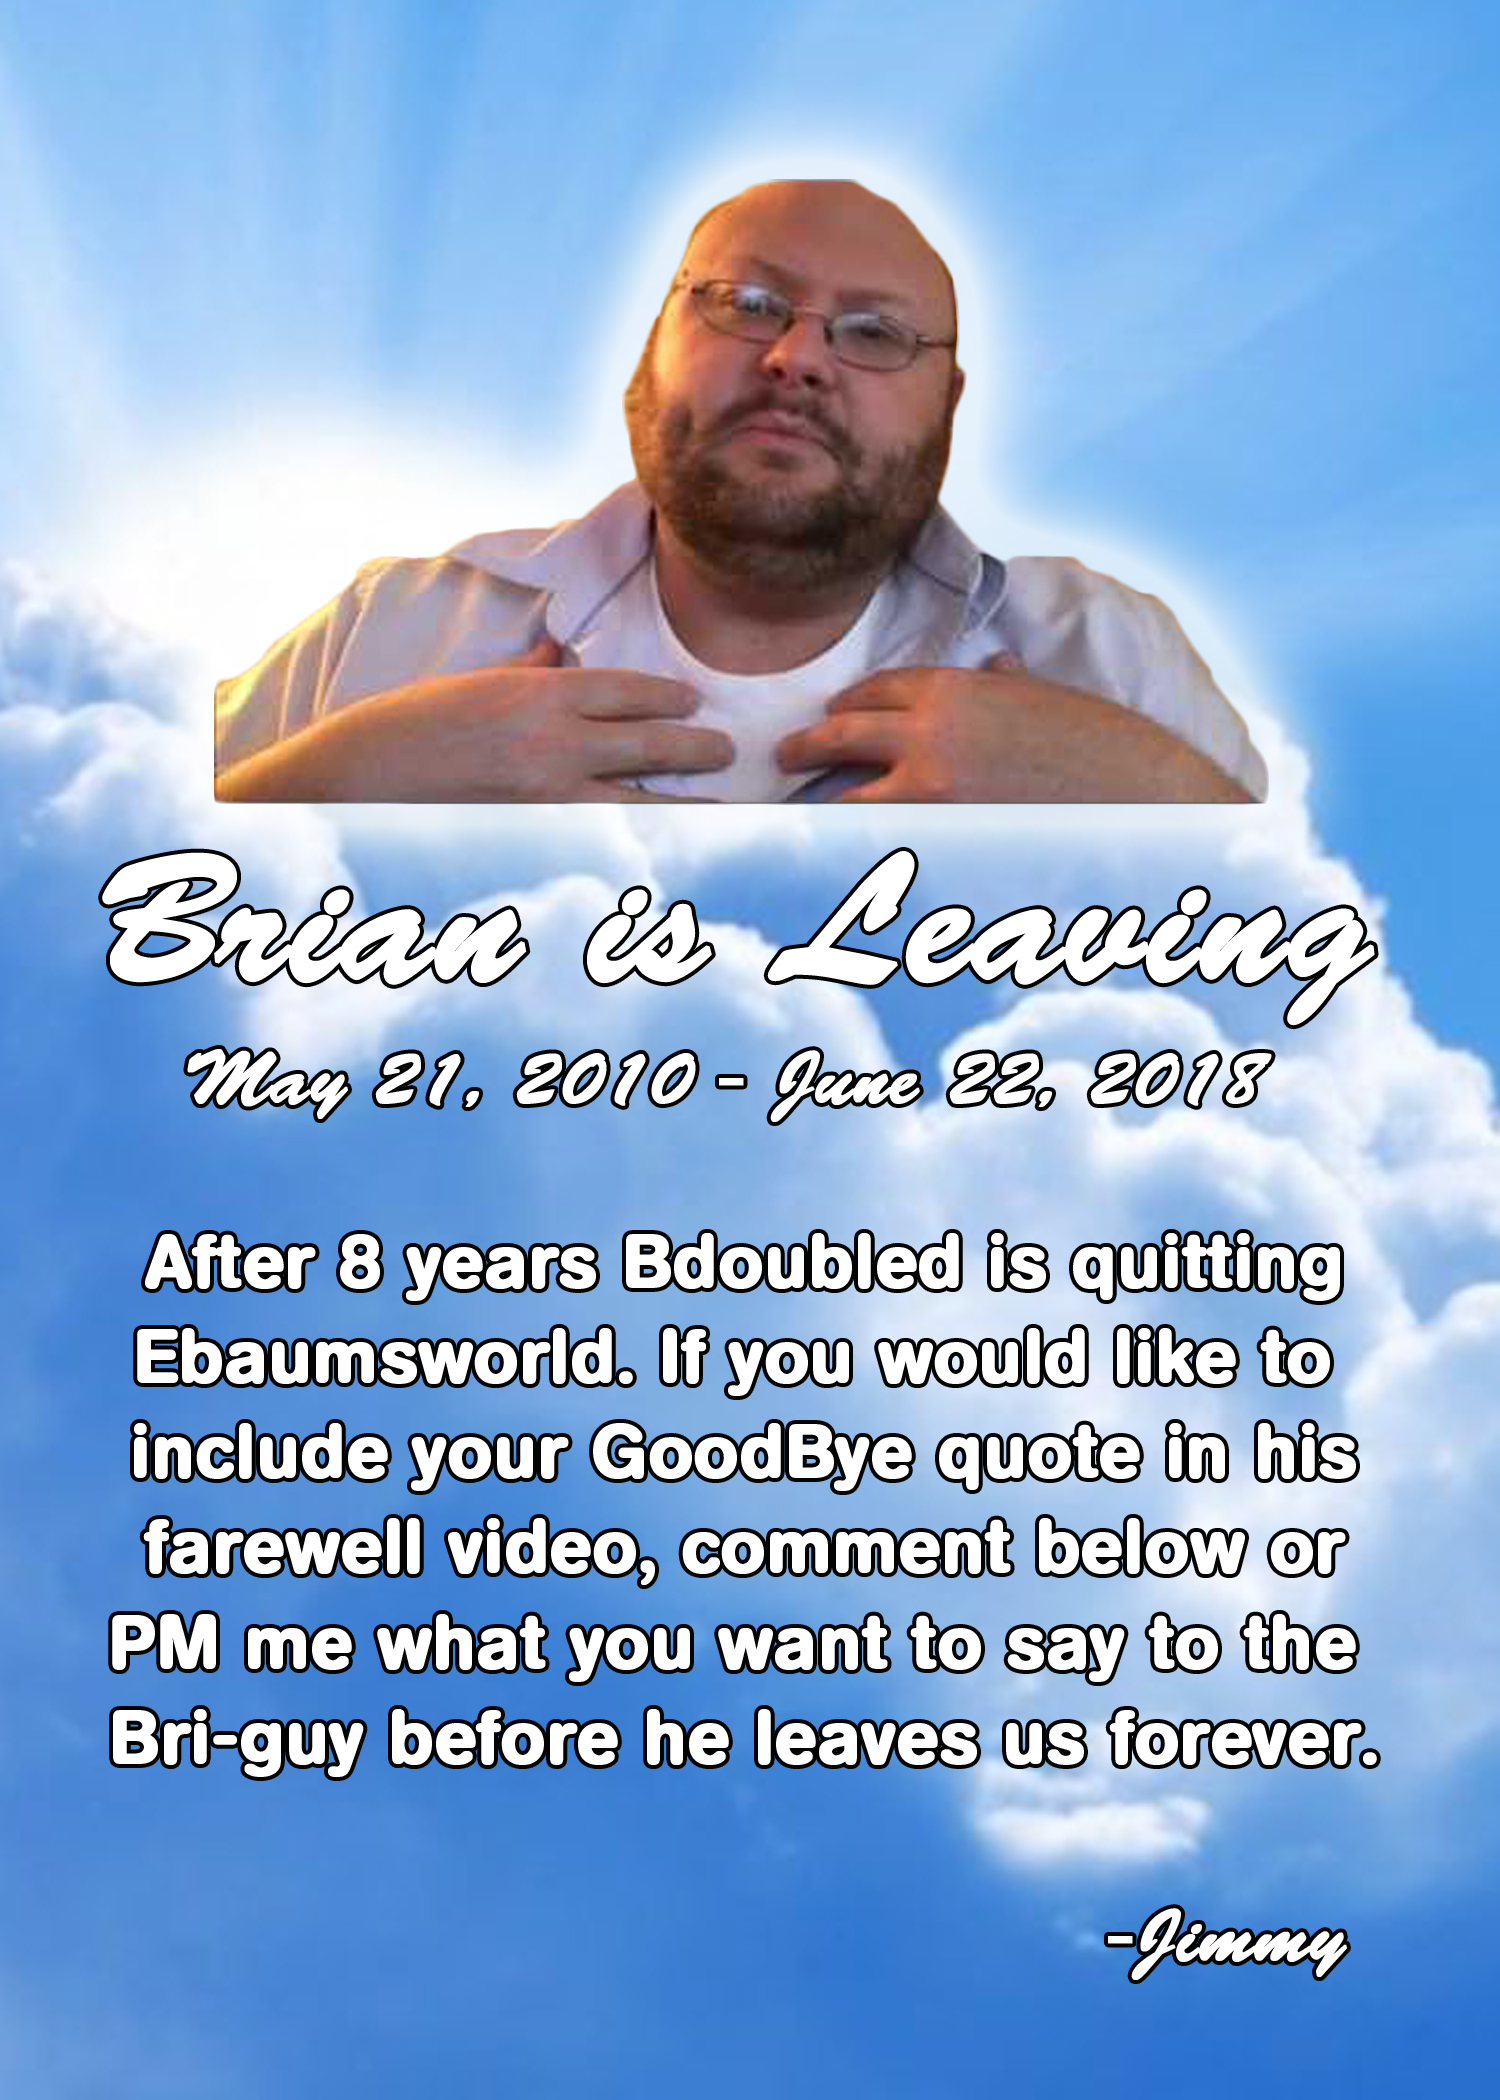 It's been a long run, bud. Anyone who wants to wish him goodbye, PM me or comment and i'll put you in the Farewell video